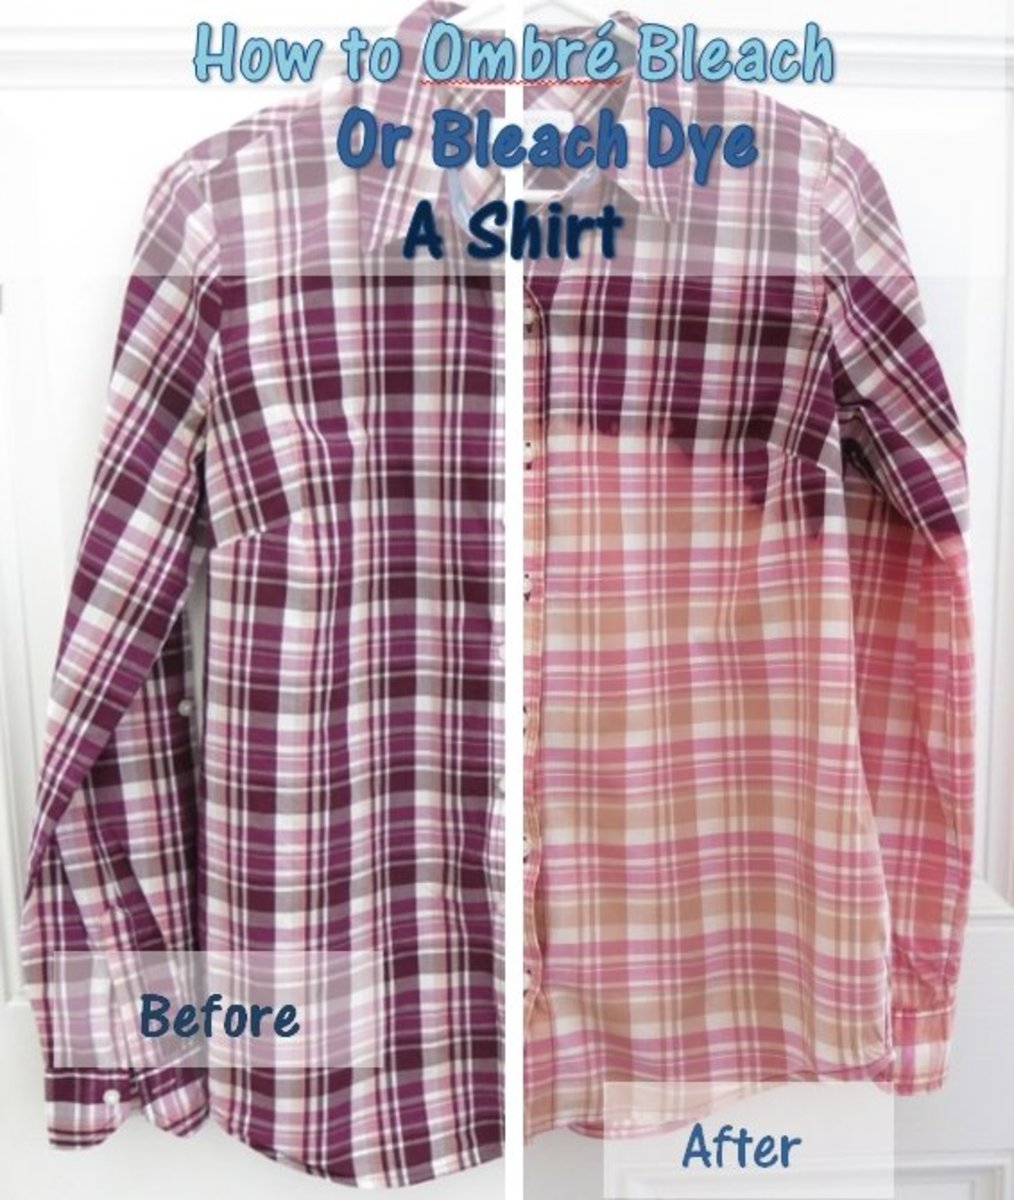 DIY Fashion Tutorial:  How to Ombré Bleach or Bleach Dye a Shirt